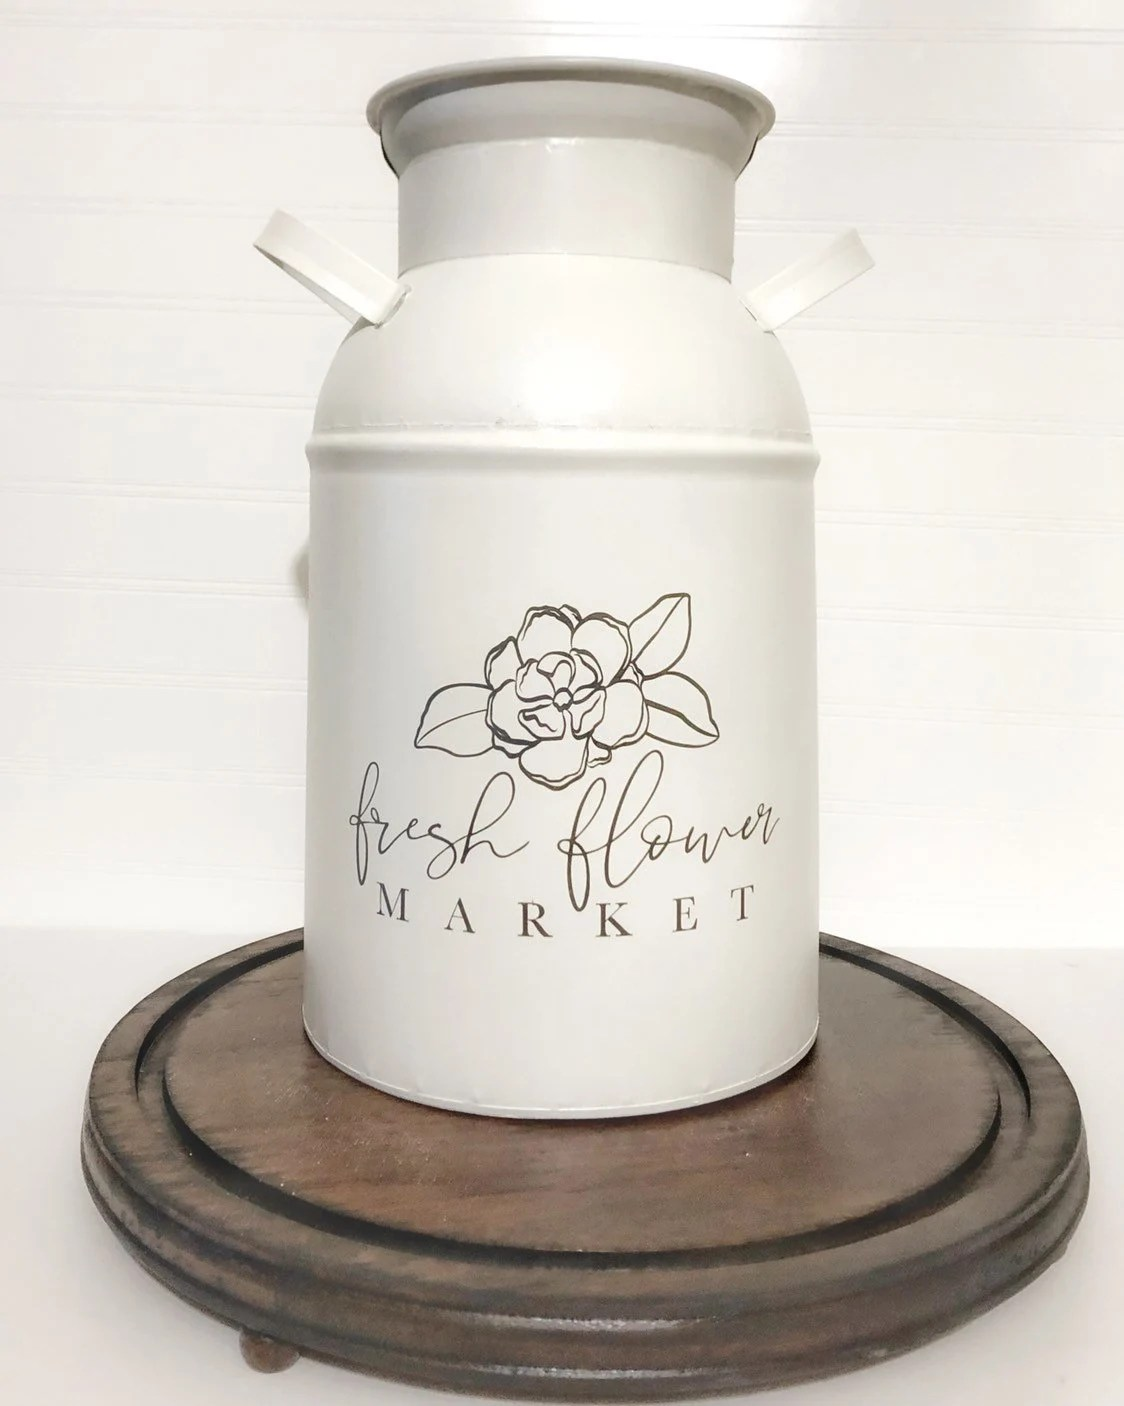 Decorative Milk Urn Milk Can Decor Farmhouse Milk Can Milk Jug Vase Milk Can Vase Rustic Farmhouse Decor 13 Inch Galvanized Metal Milk Can Modern Farmhous